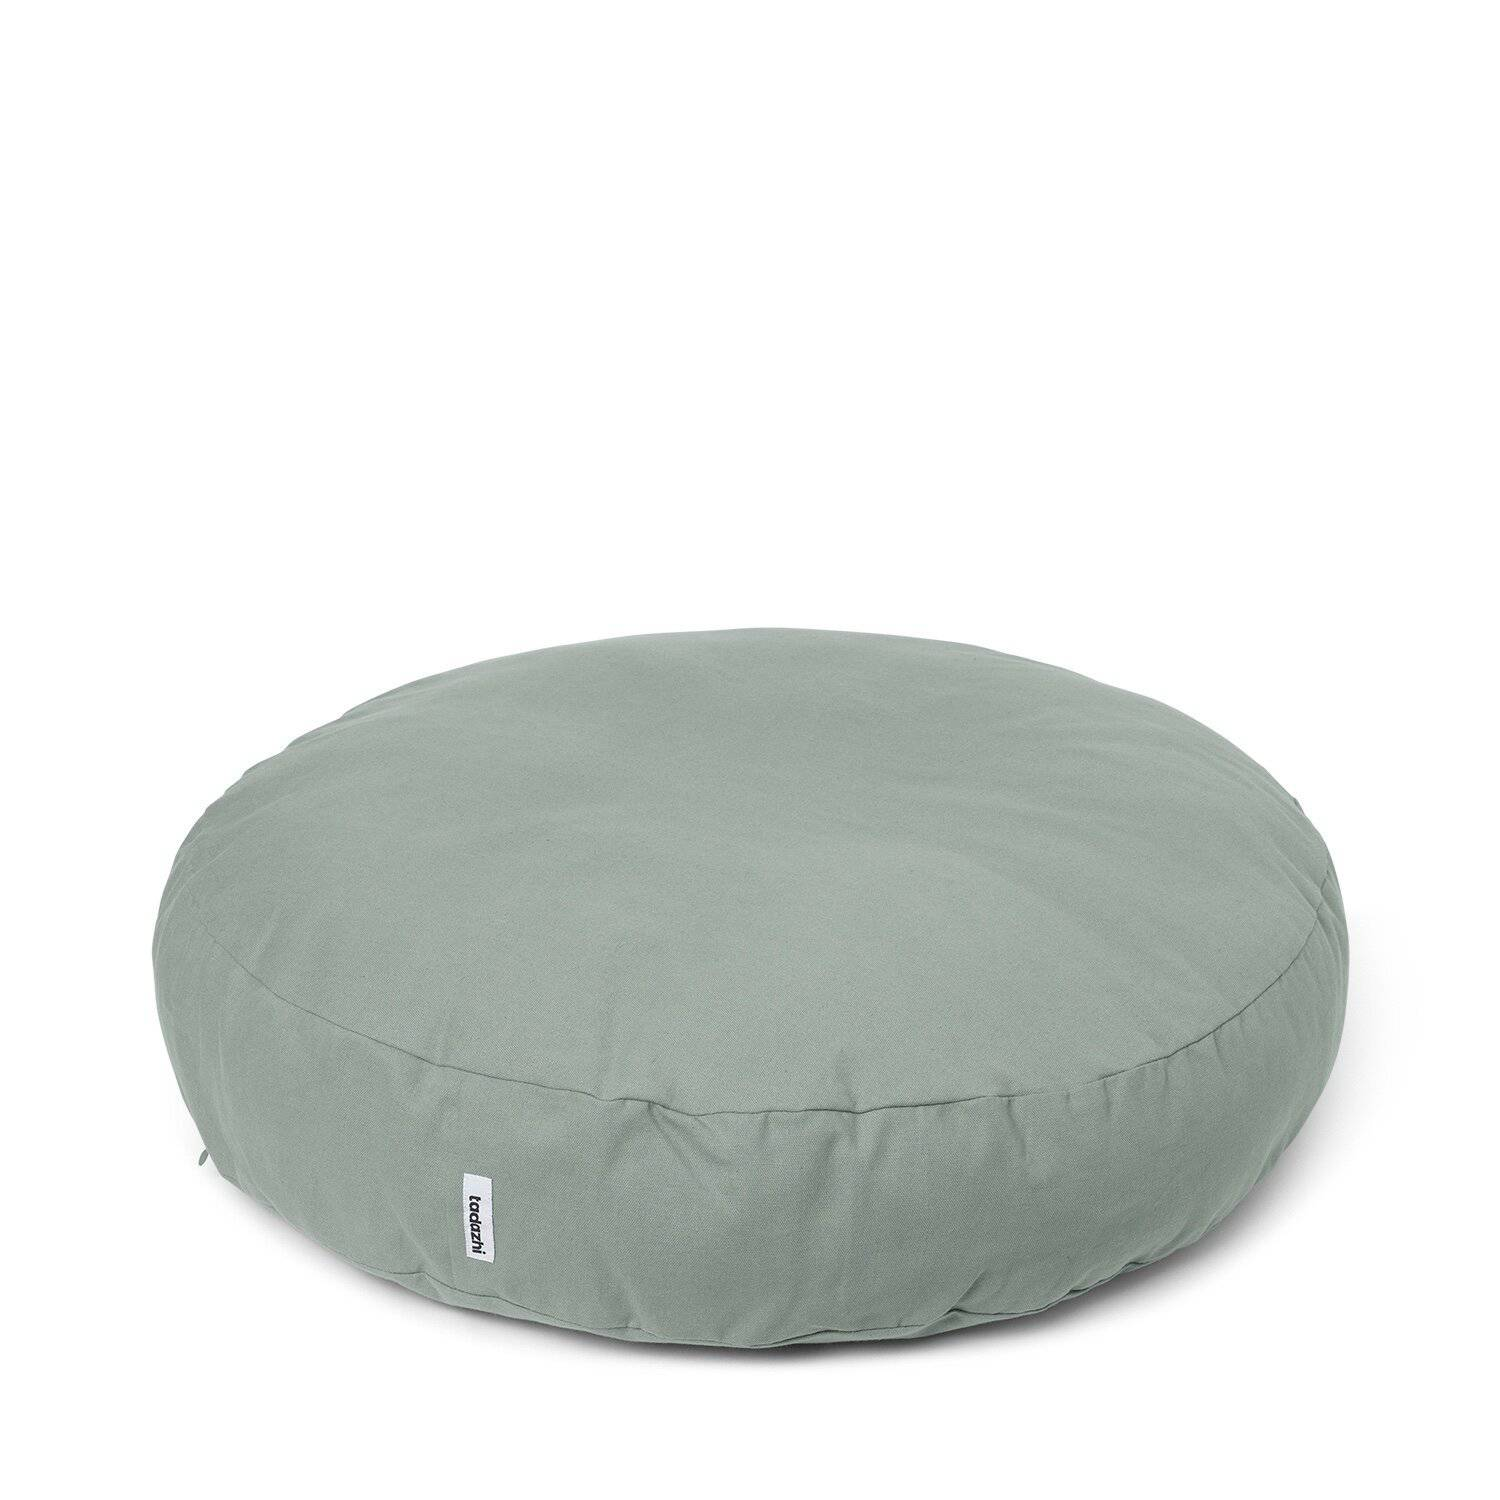 Mellow Green - Round Cotton Cushion Bed - [Holler Brighton]